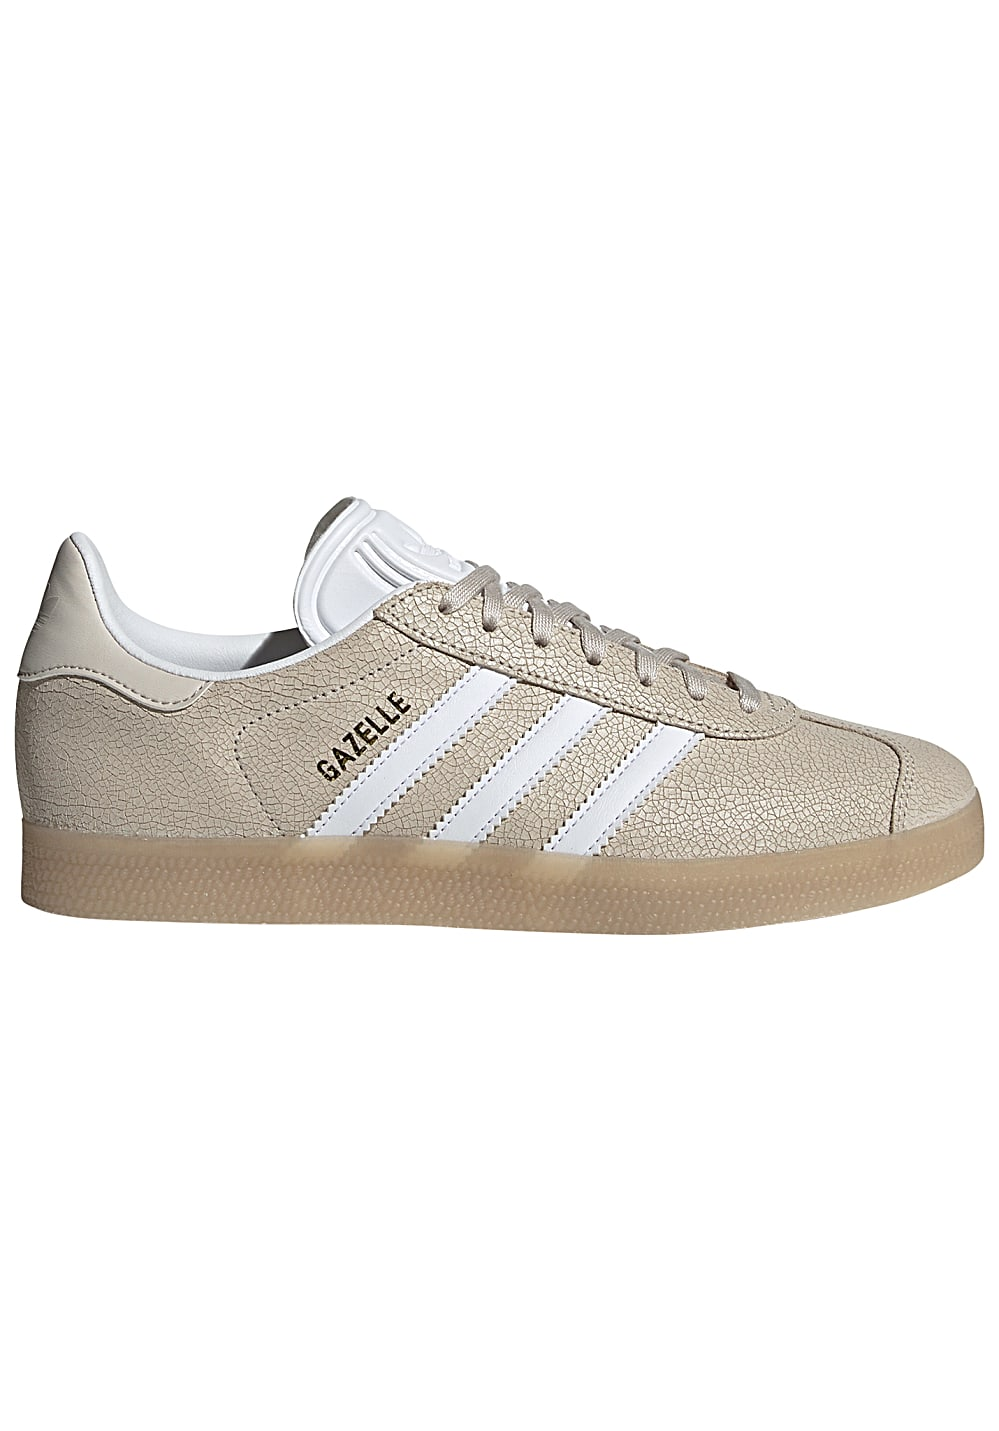 adidas Originals Gazelle - Sneaker für Damen - Beige - Planet Sports